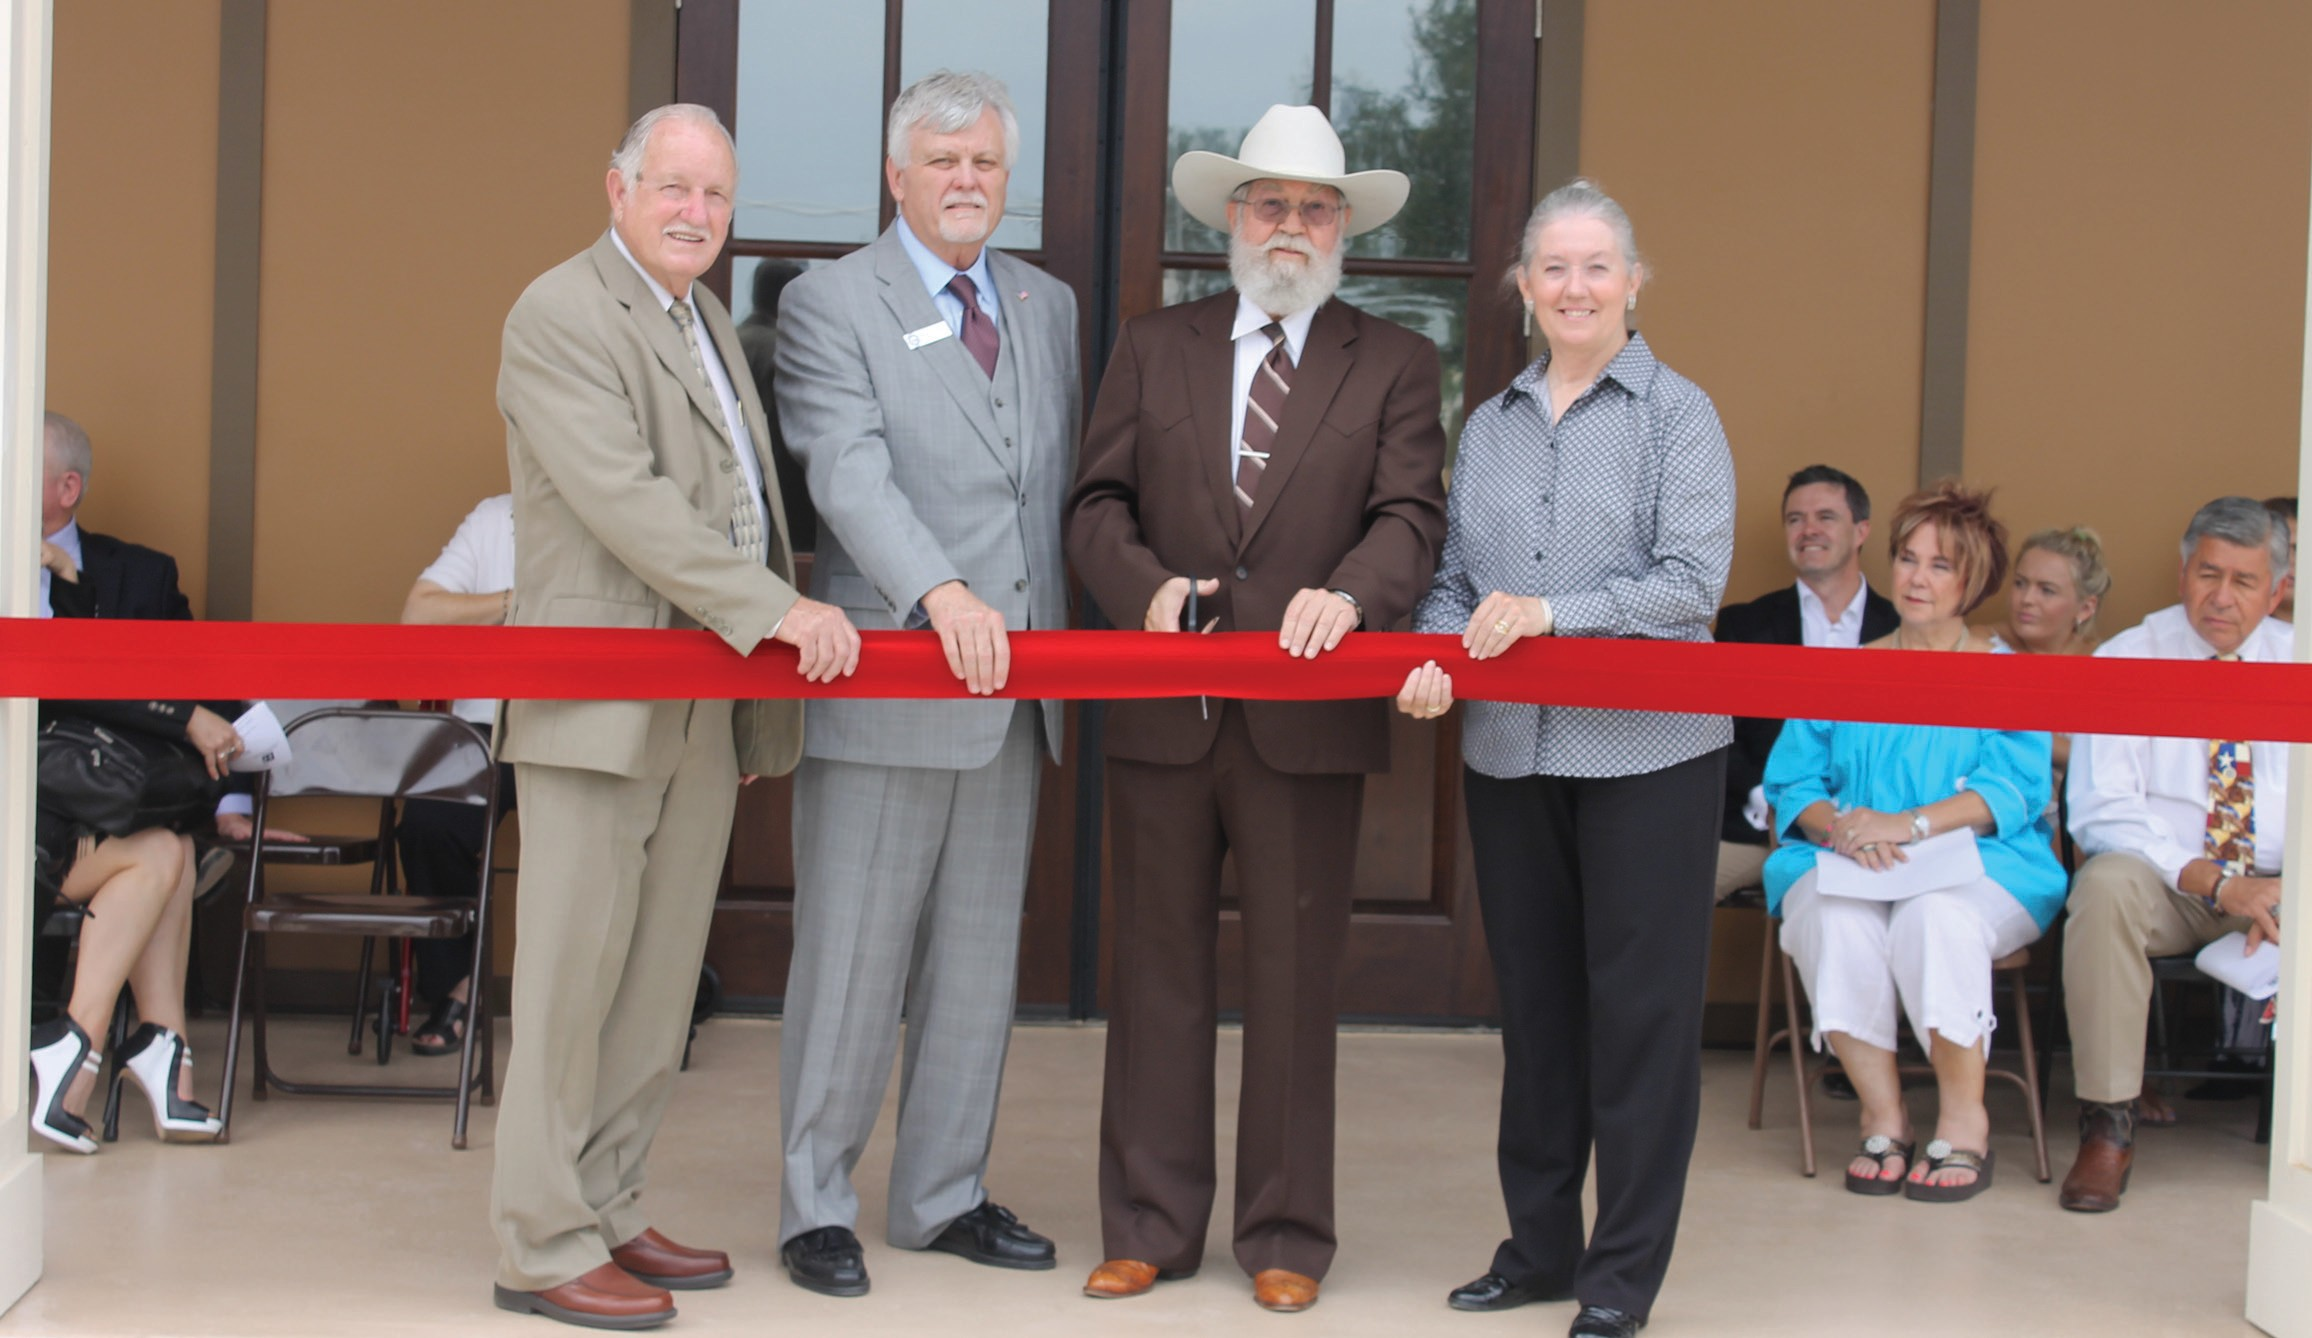 Thursday afternoon, September 10, a ribbon cutting was held for the opening of the new Precinct 2 Justice of the Peace building on FM 1375 east of Lytle. From left are Atascosa County Comissioner Bill Torans, Pct. 2; Atascosa County Judge Bob Hurley, Justice of the Peace Kyle Bradley, Pct. 2; and retired Atascosa County Judge Diana Bautista.